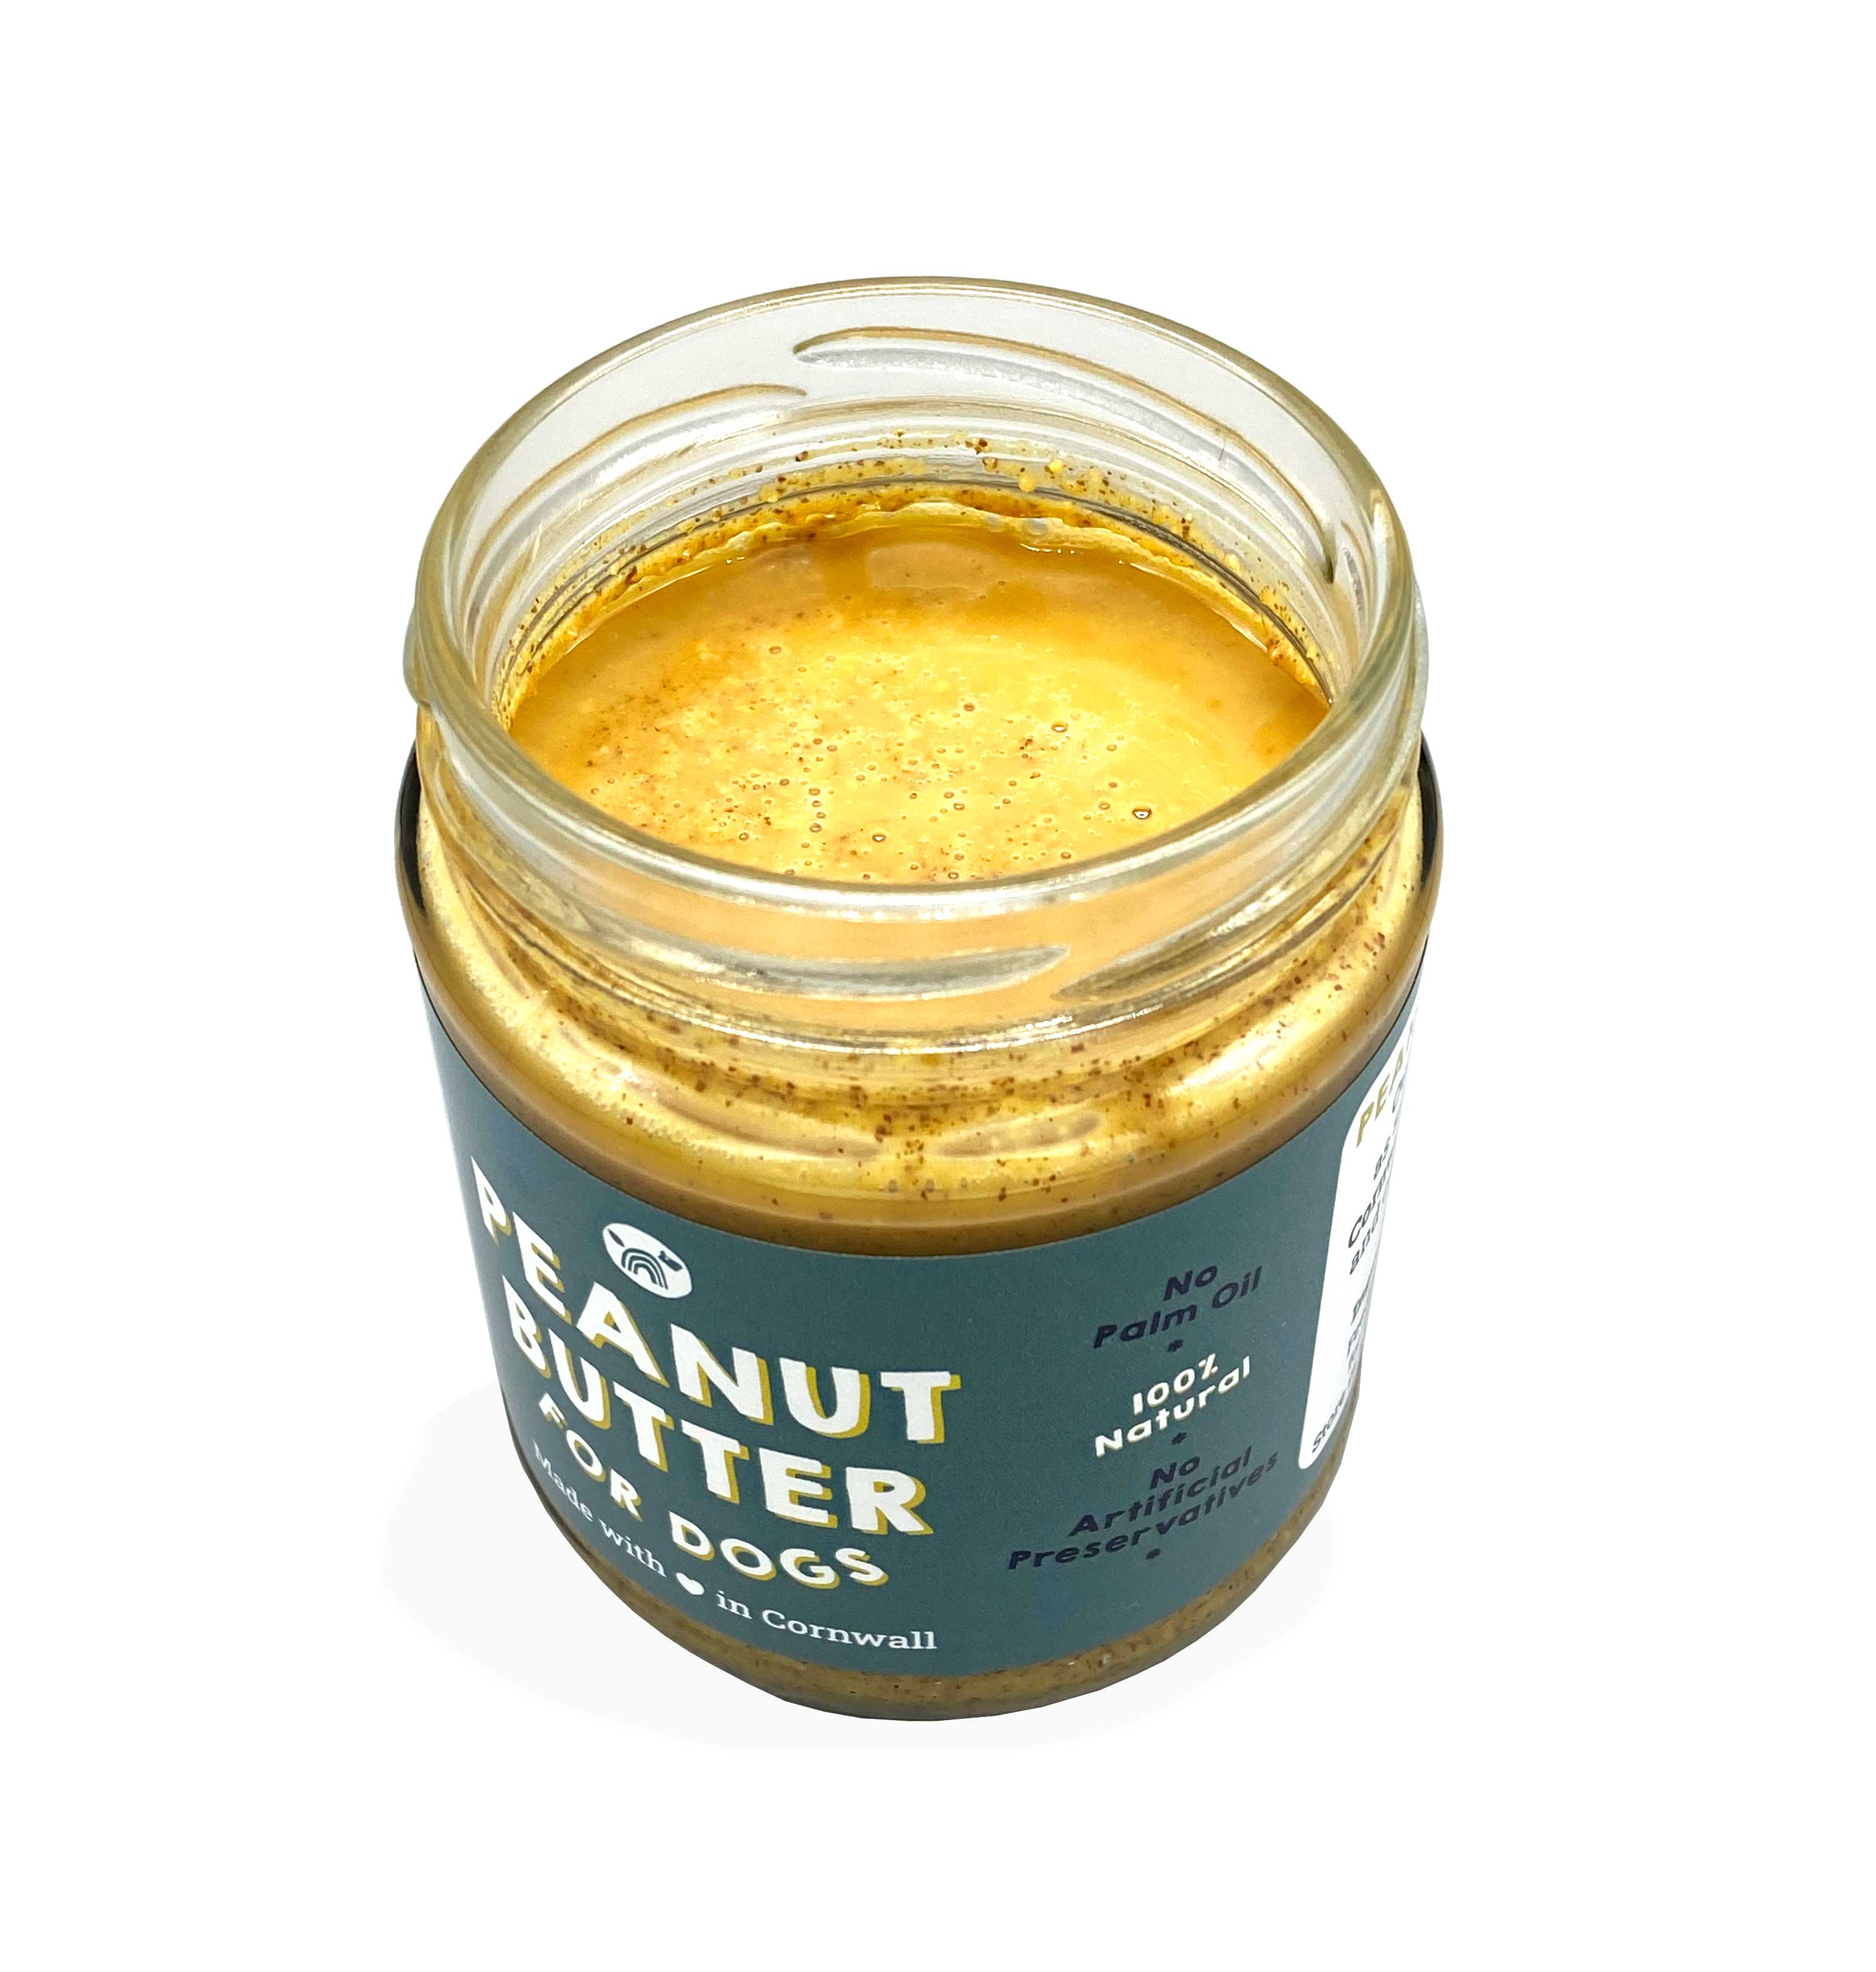 Cornish Peanut Butter for Dogs